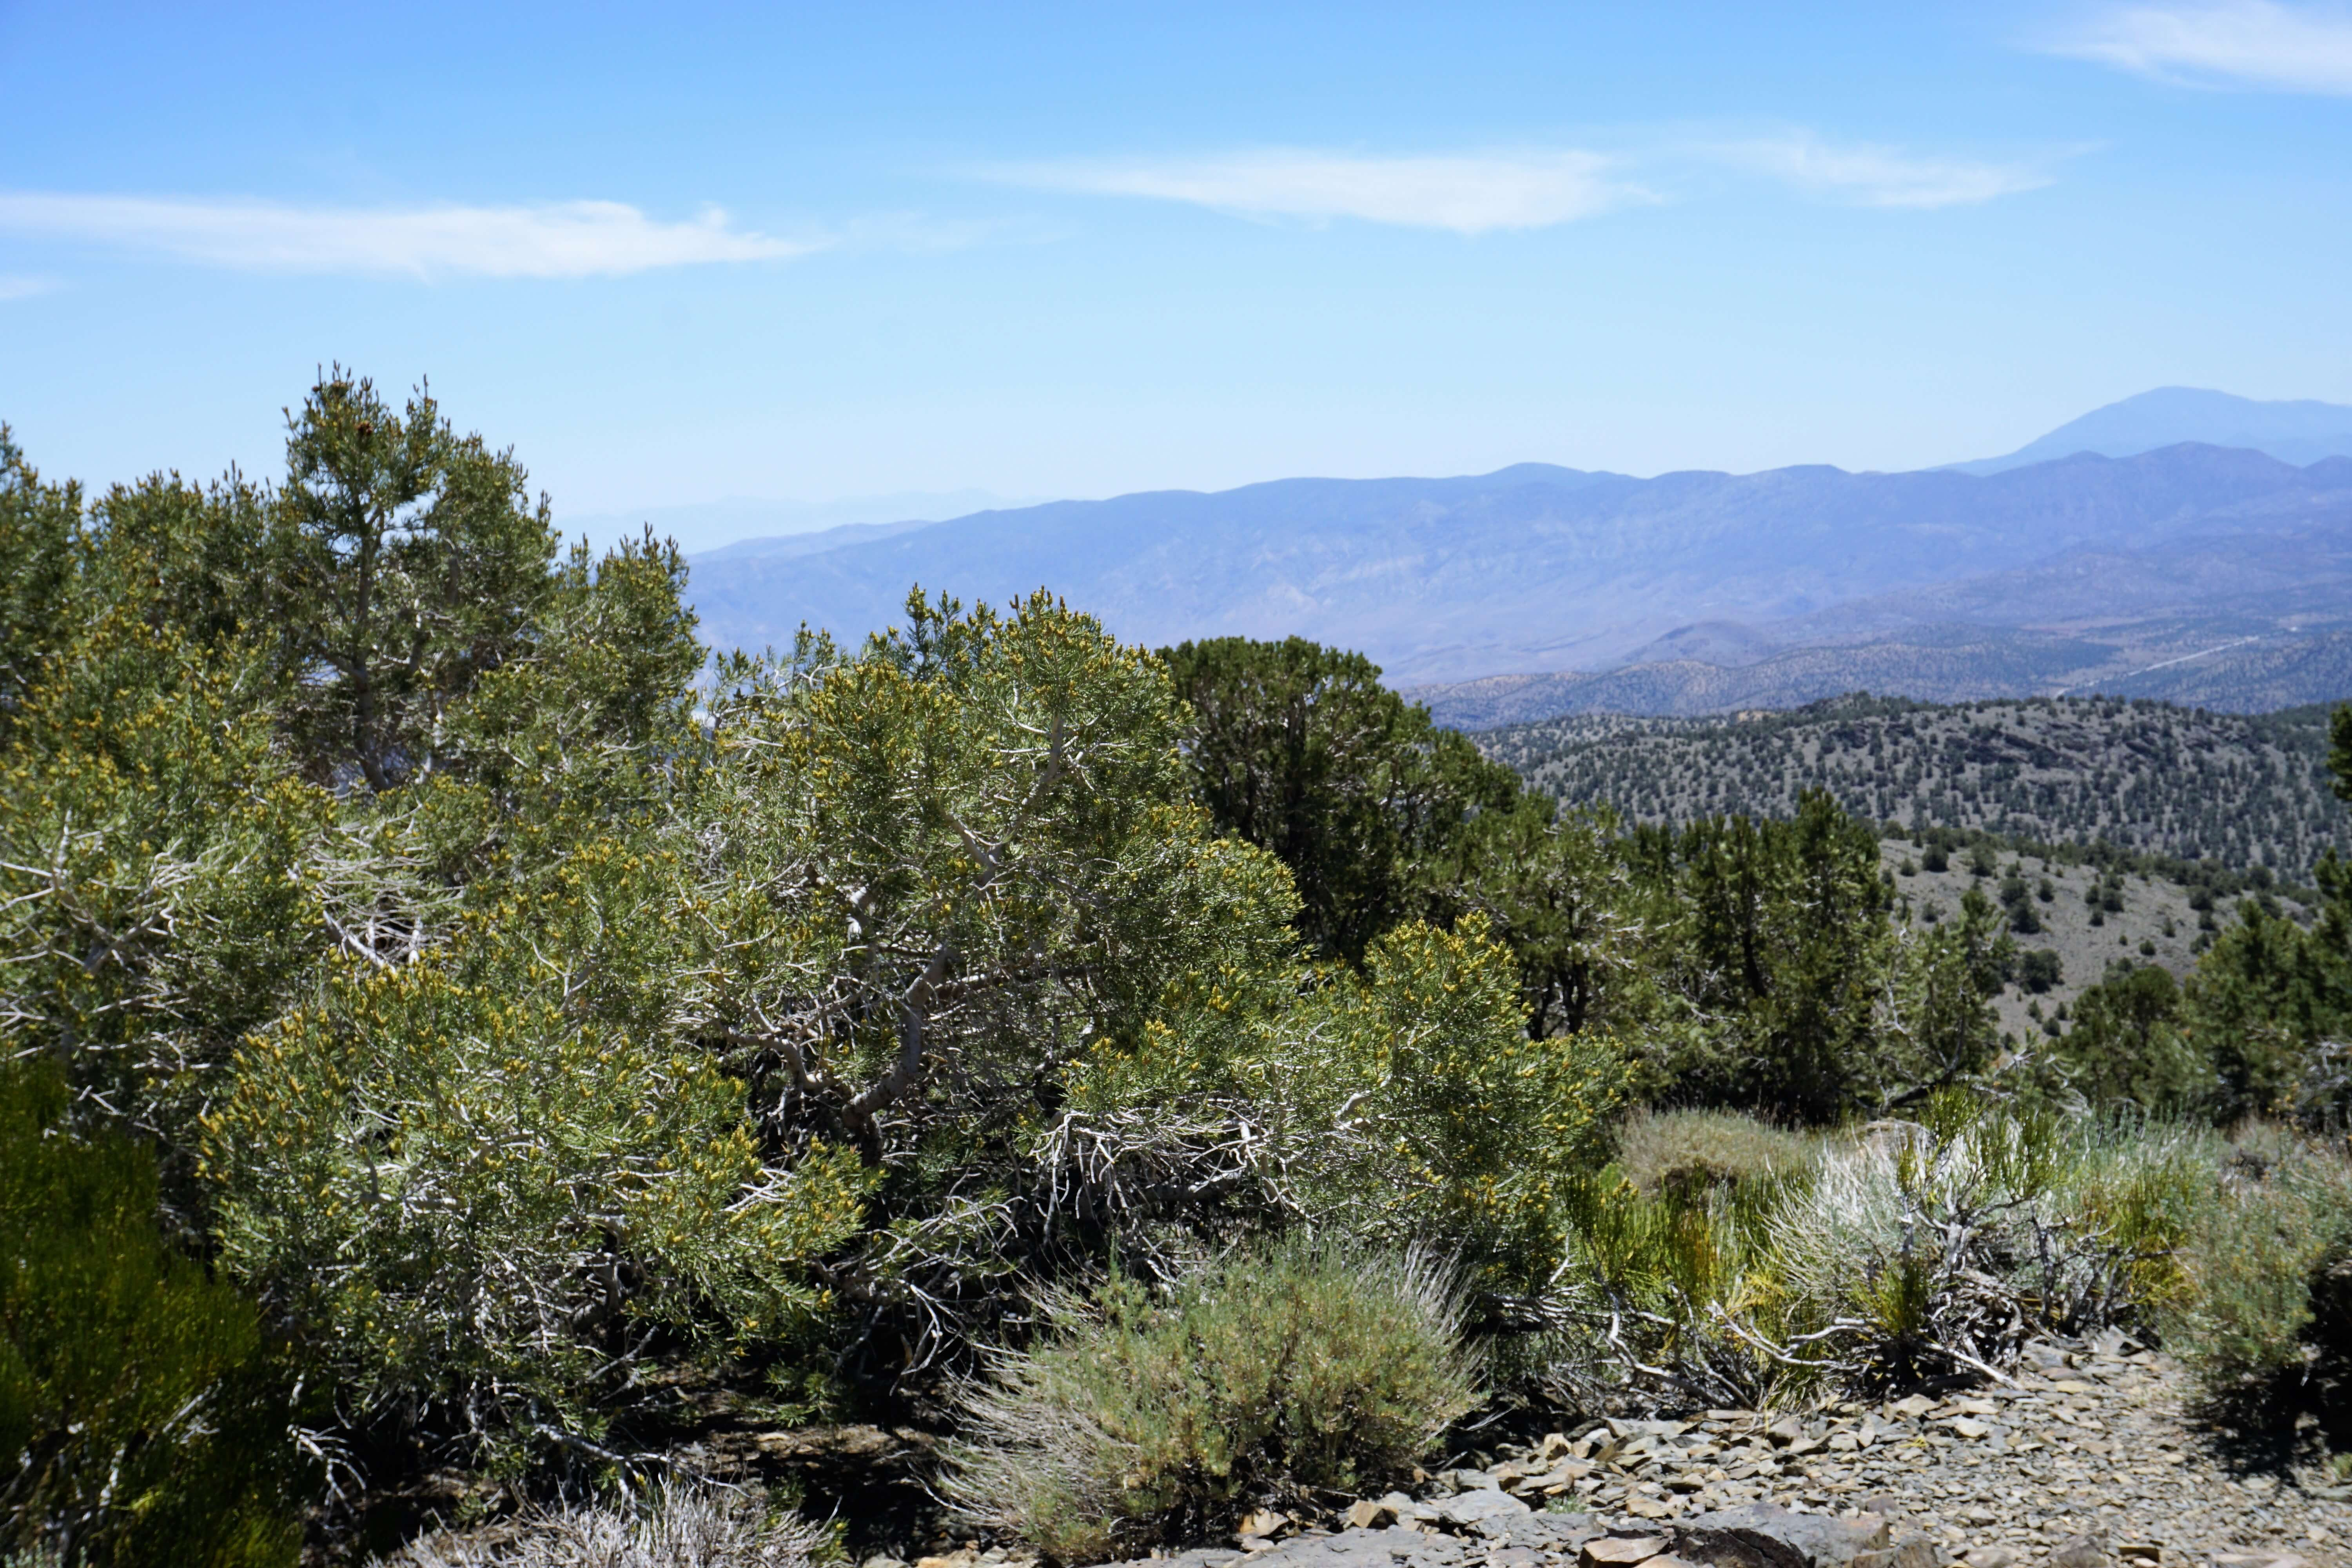 A view of the Eastern Sierras from the Bristlecone Pine Forest